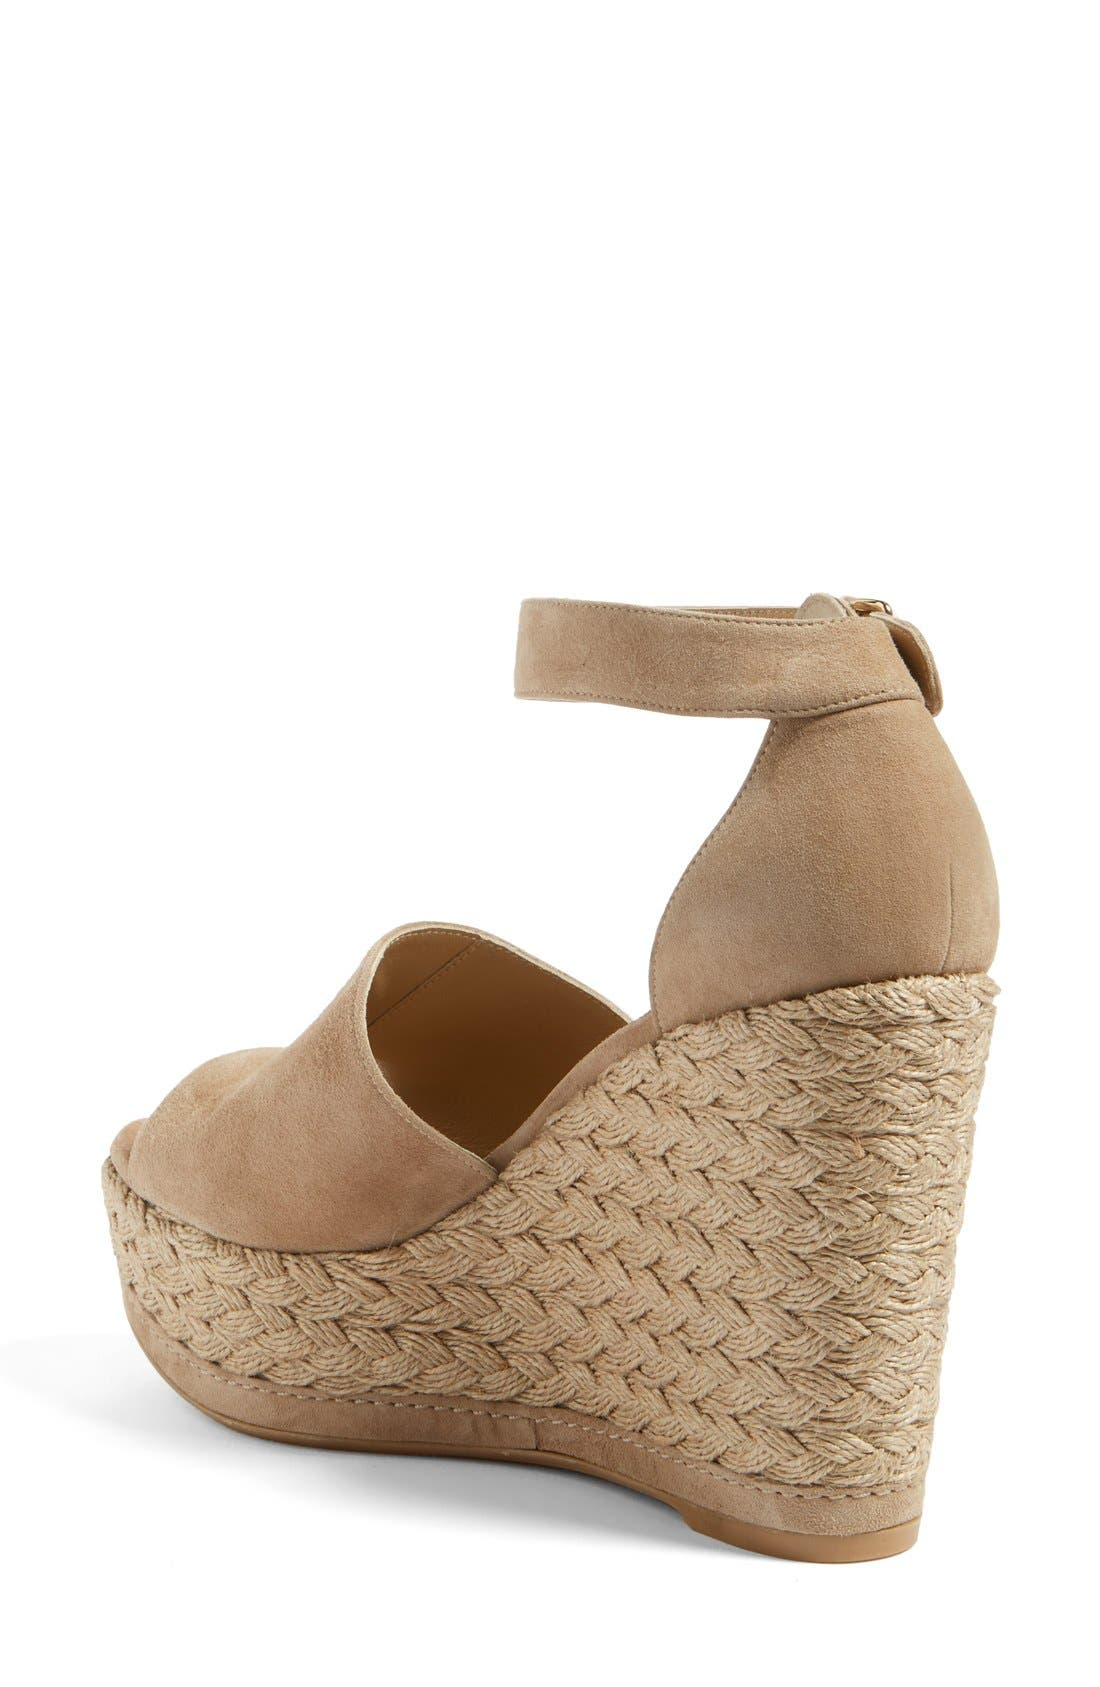 Sohojute Platform Wedge Sandal,                             Alternate thumbnail 2, color,                             Mojave Suede